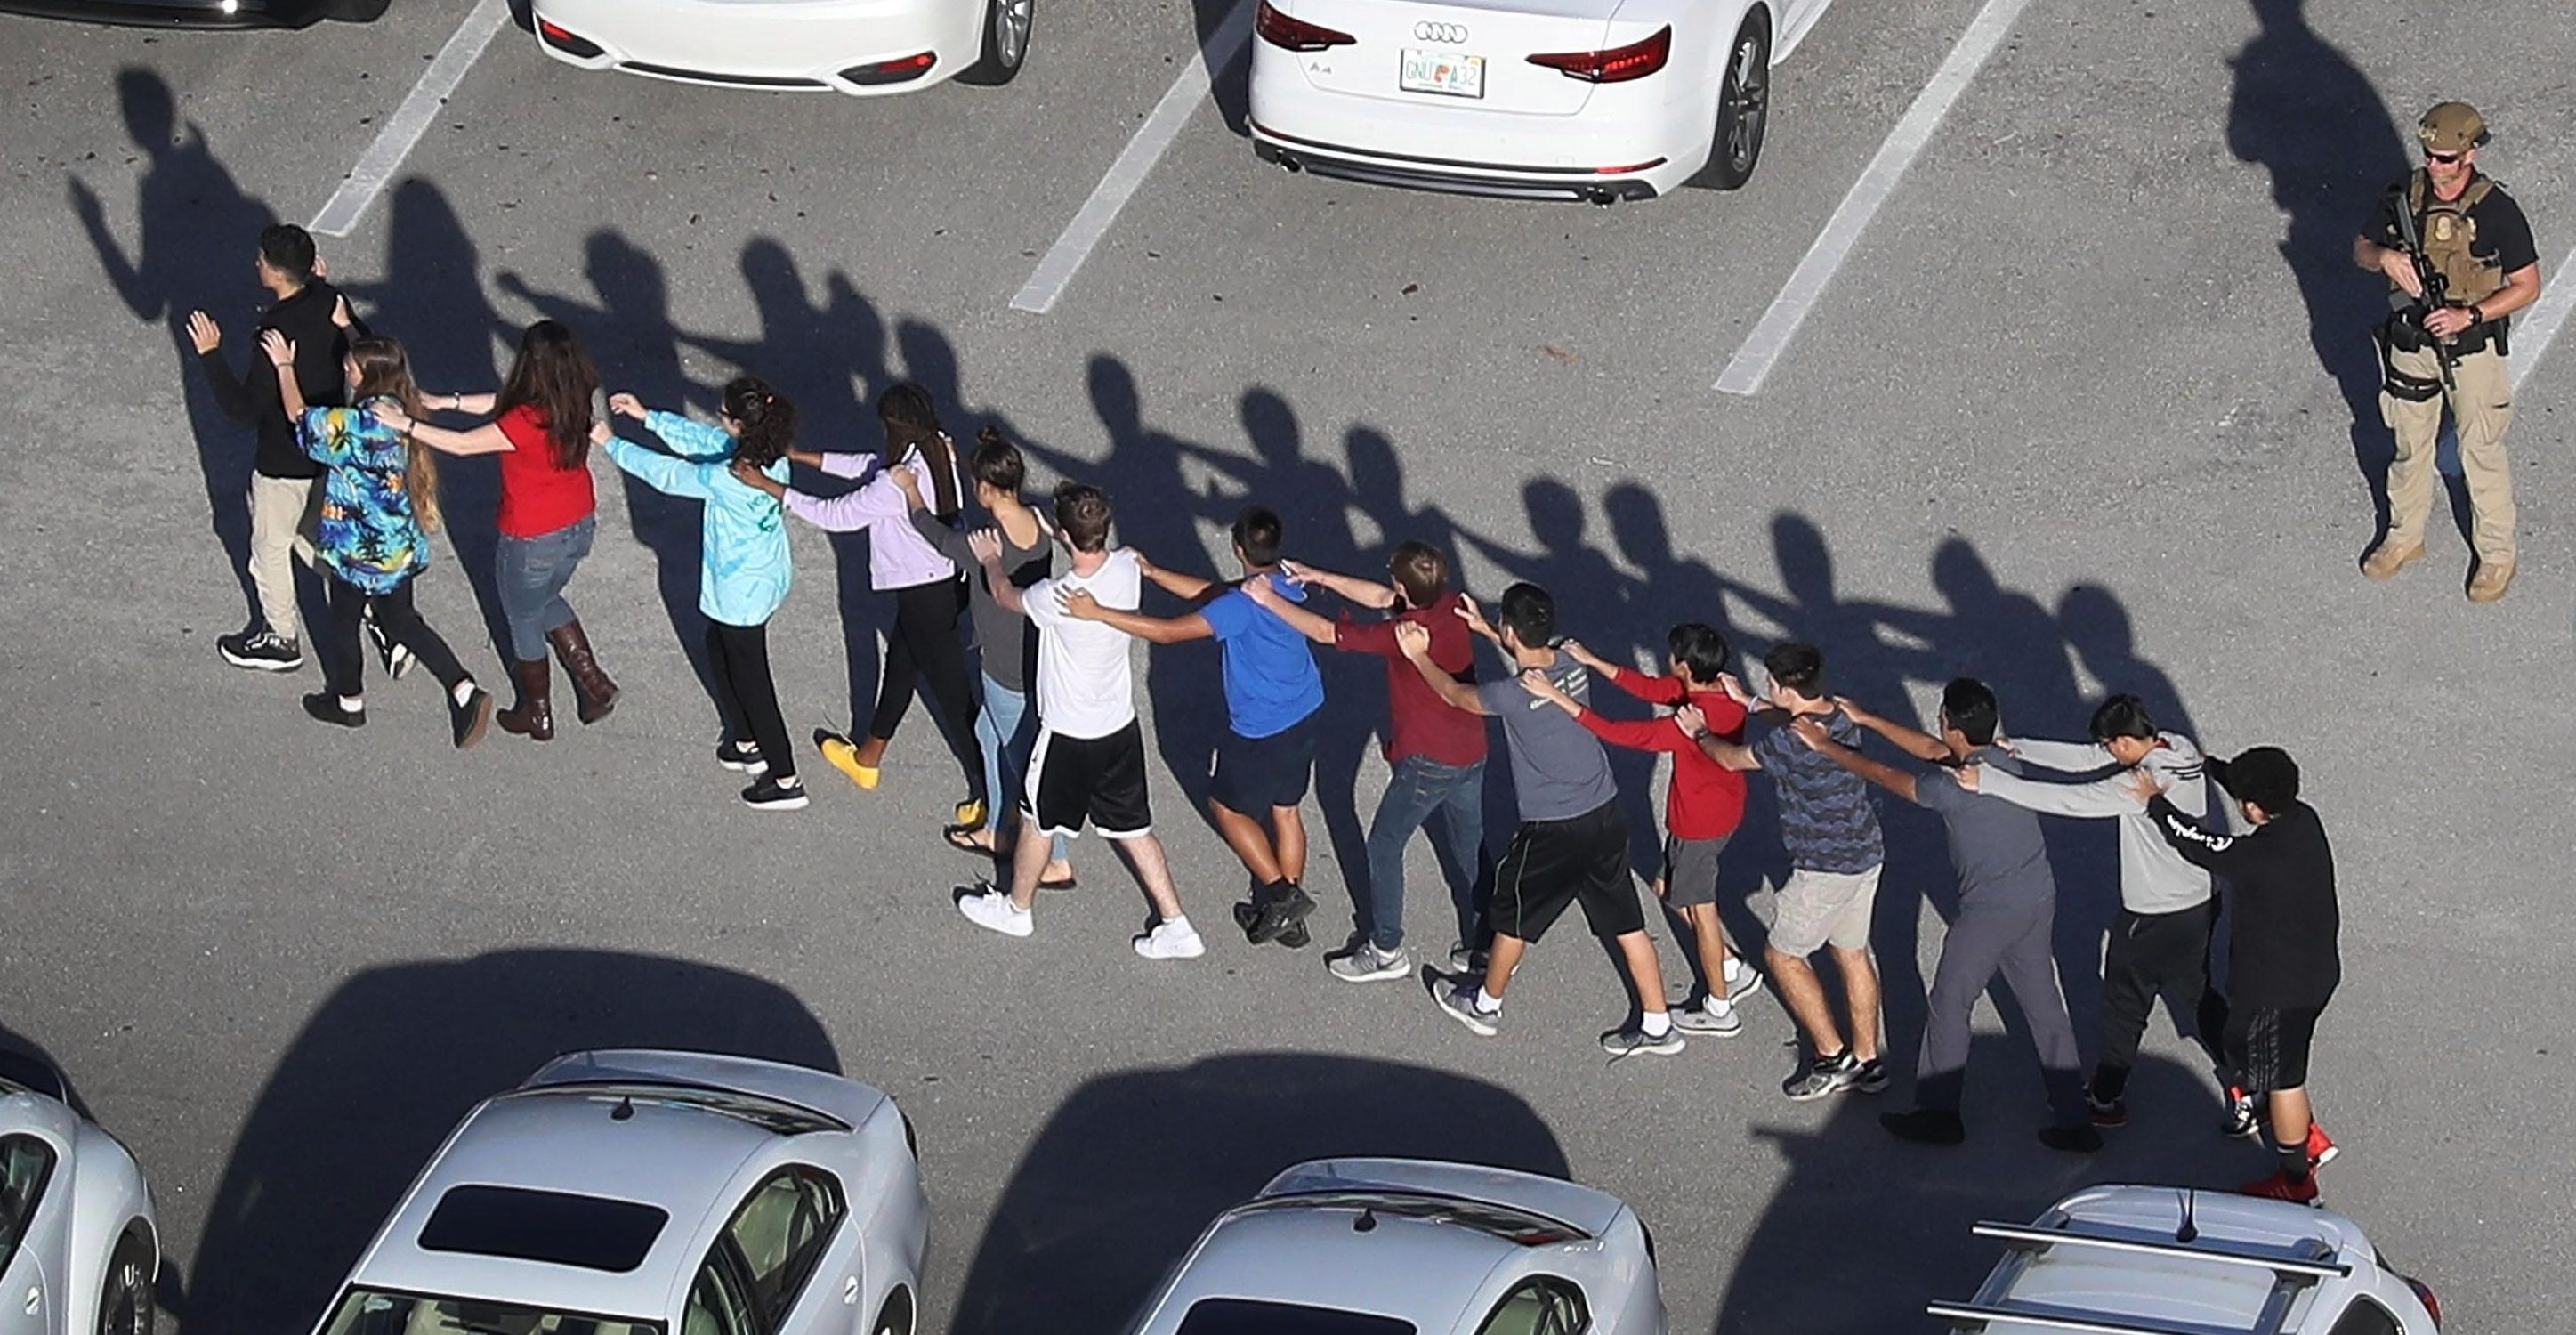 Dozens of students were made to form lines as they evacuated the school in Florida